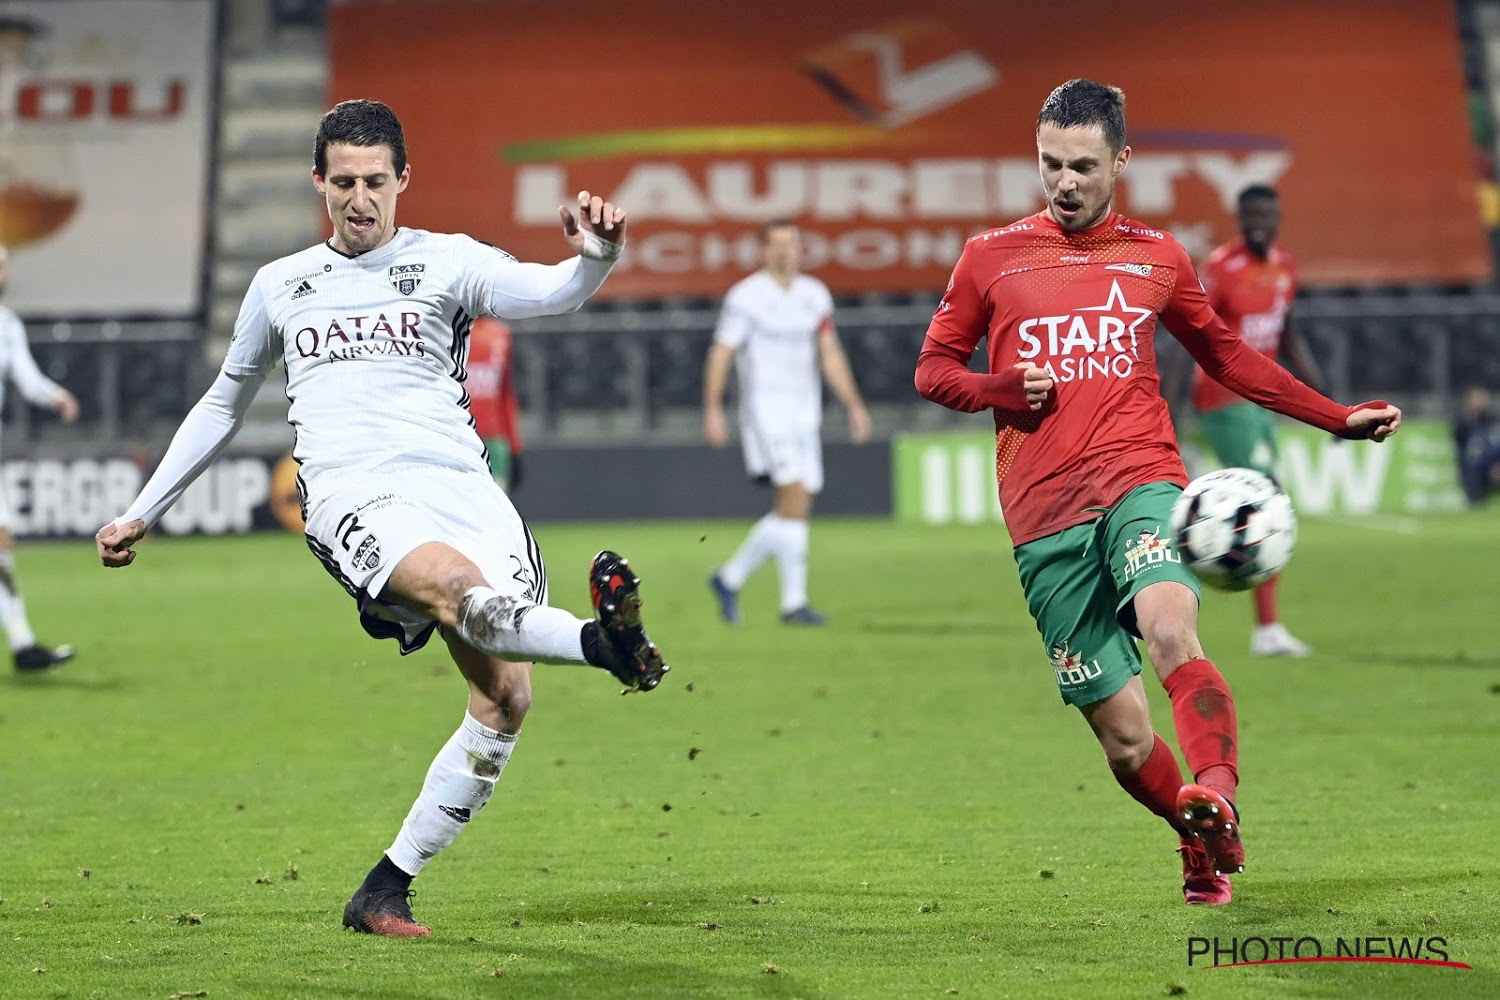 KU Leuven investigated the matter with the data – Voetbalnieuws